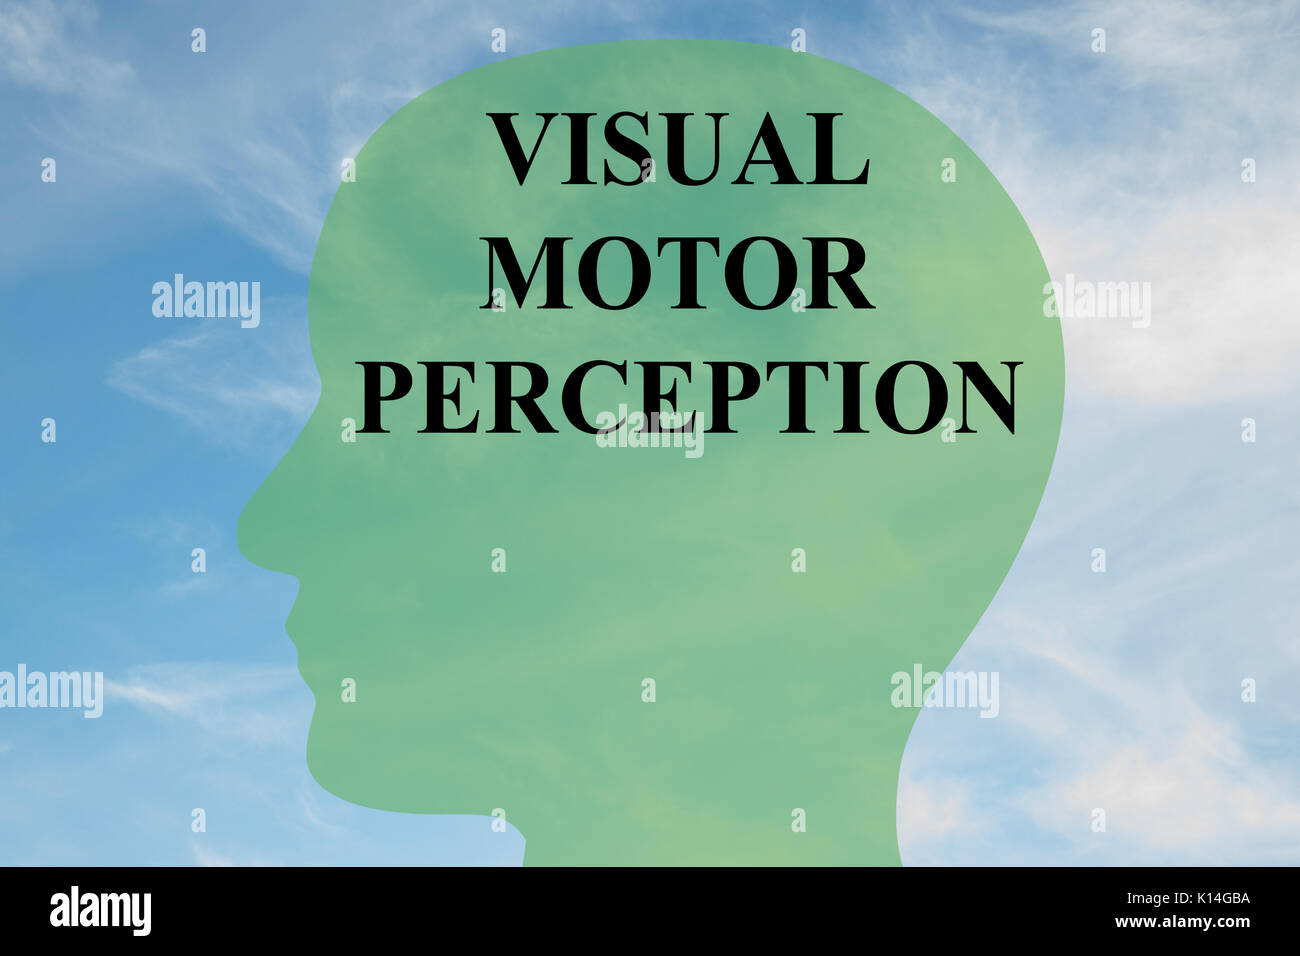 Render illustration of 'VISUAL MOTOR PERCEPTION' script on head silhouette, with cloudy sky as a background. - Stock Image